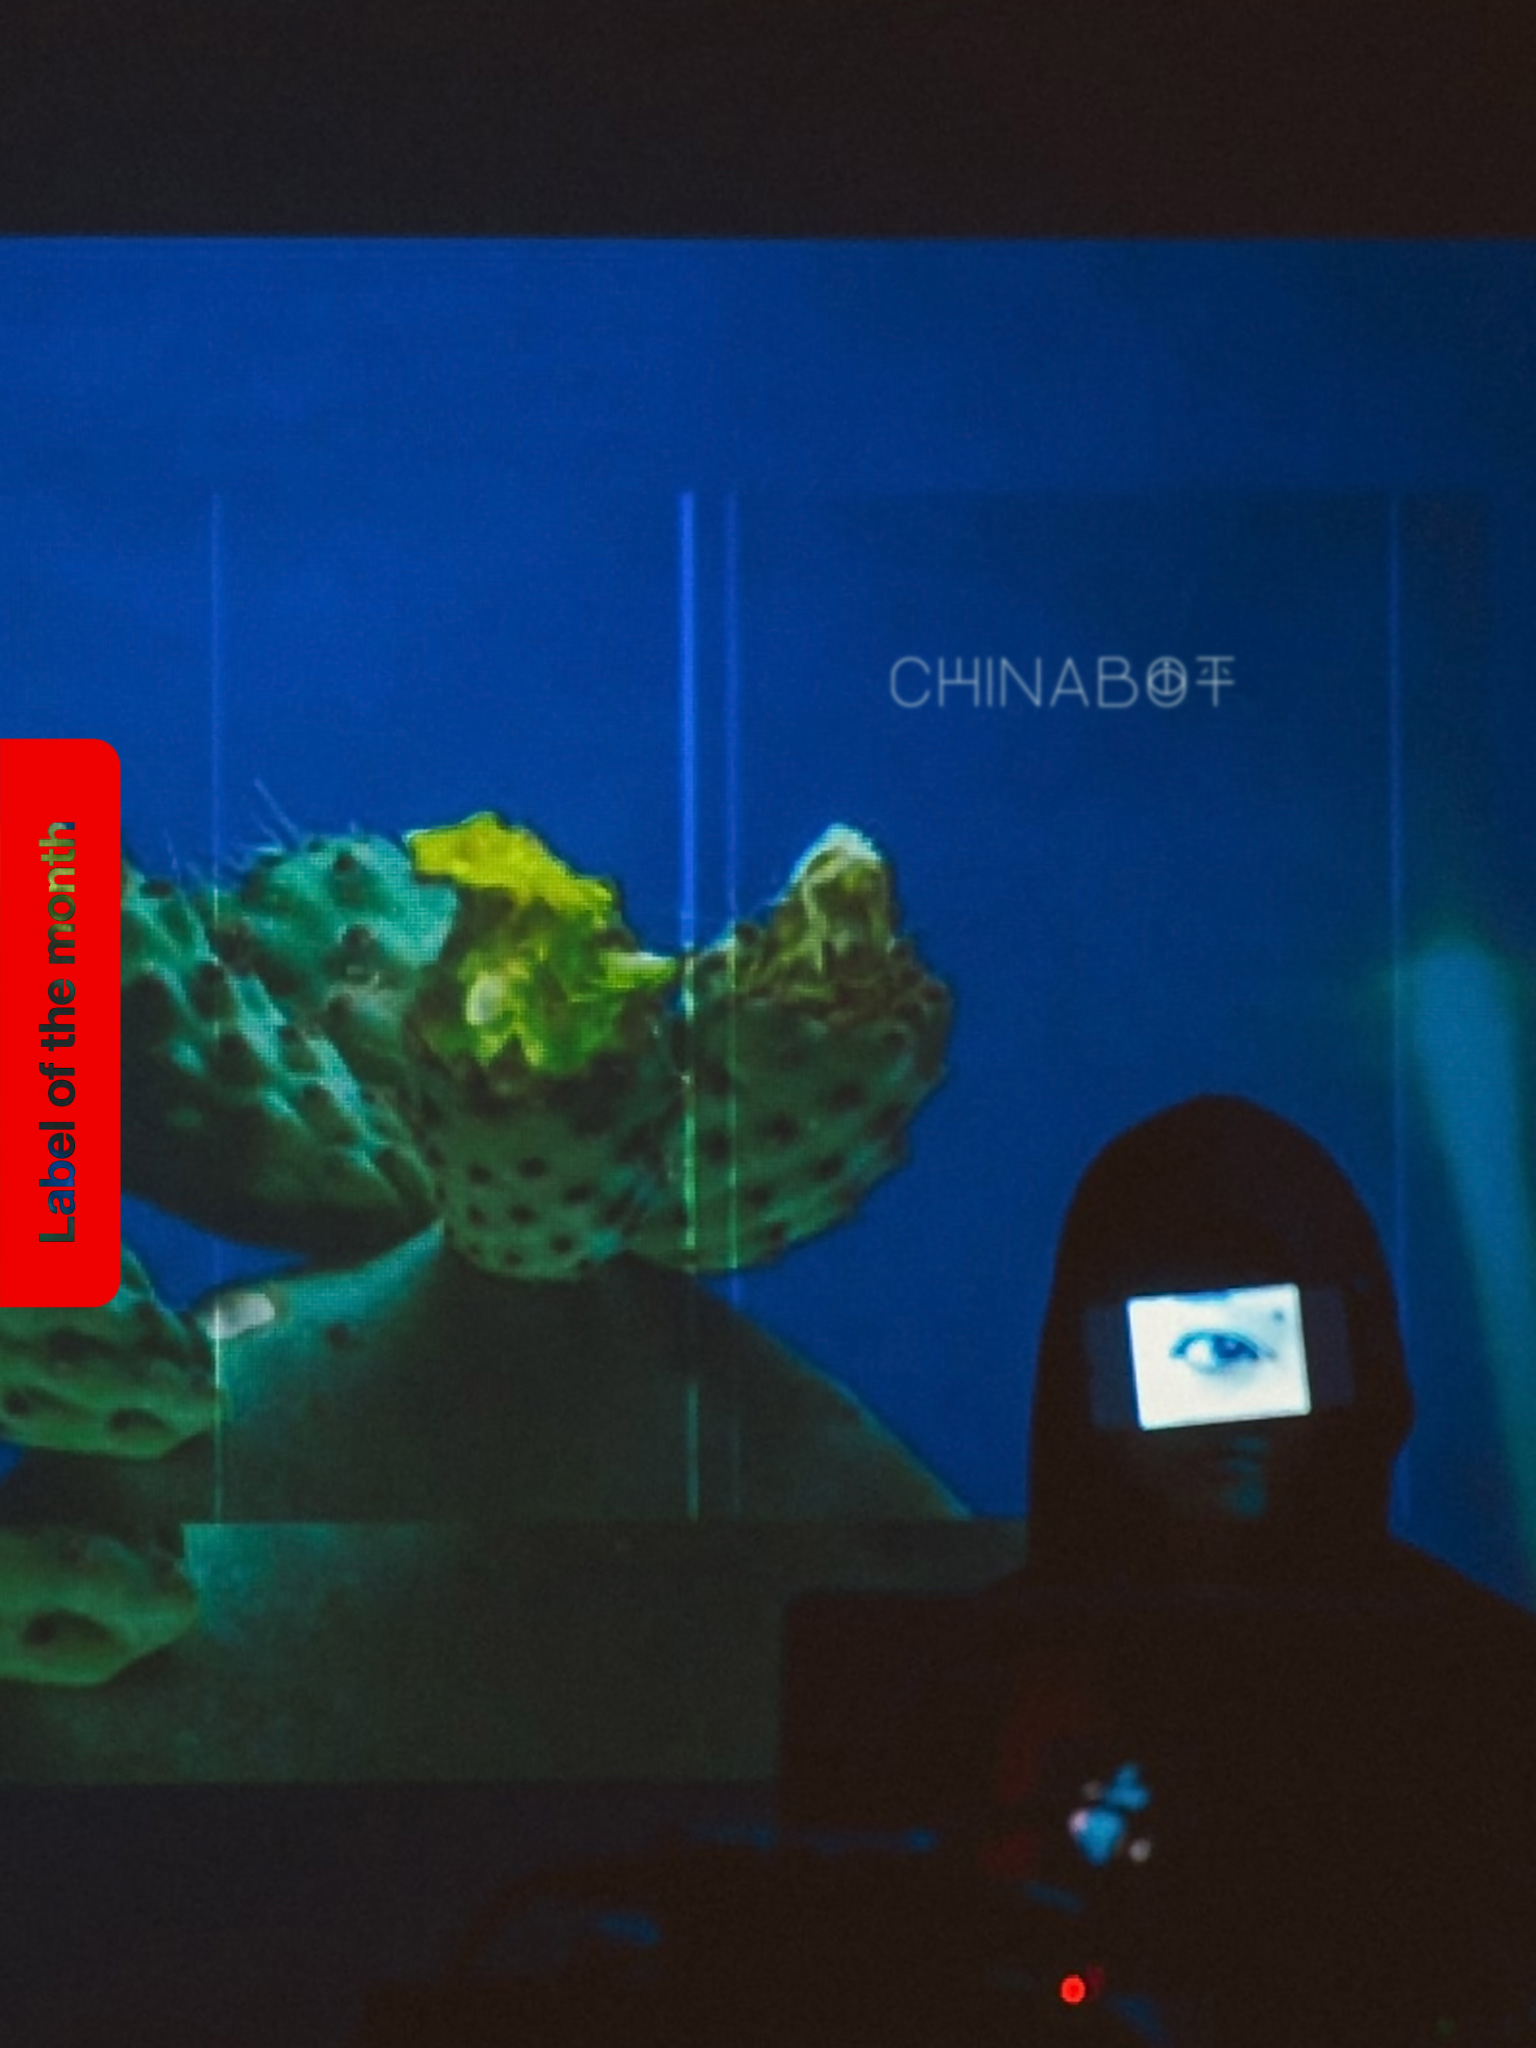 Label Of The Month: Chinabot